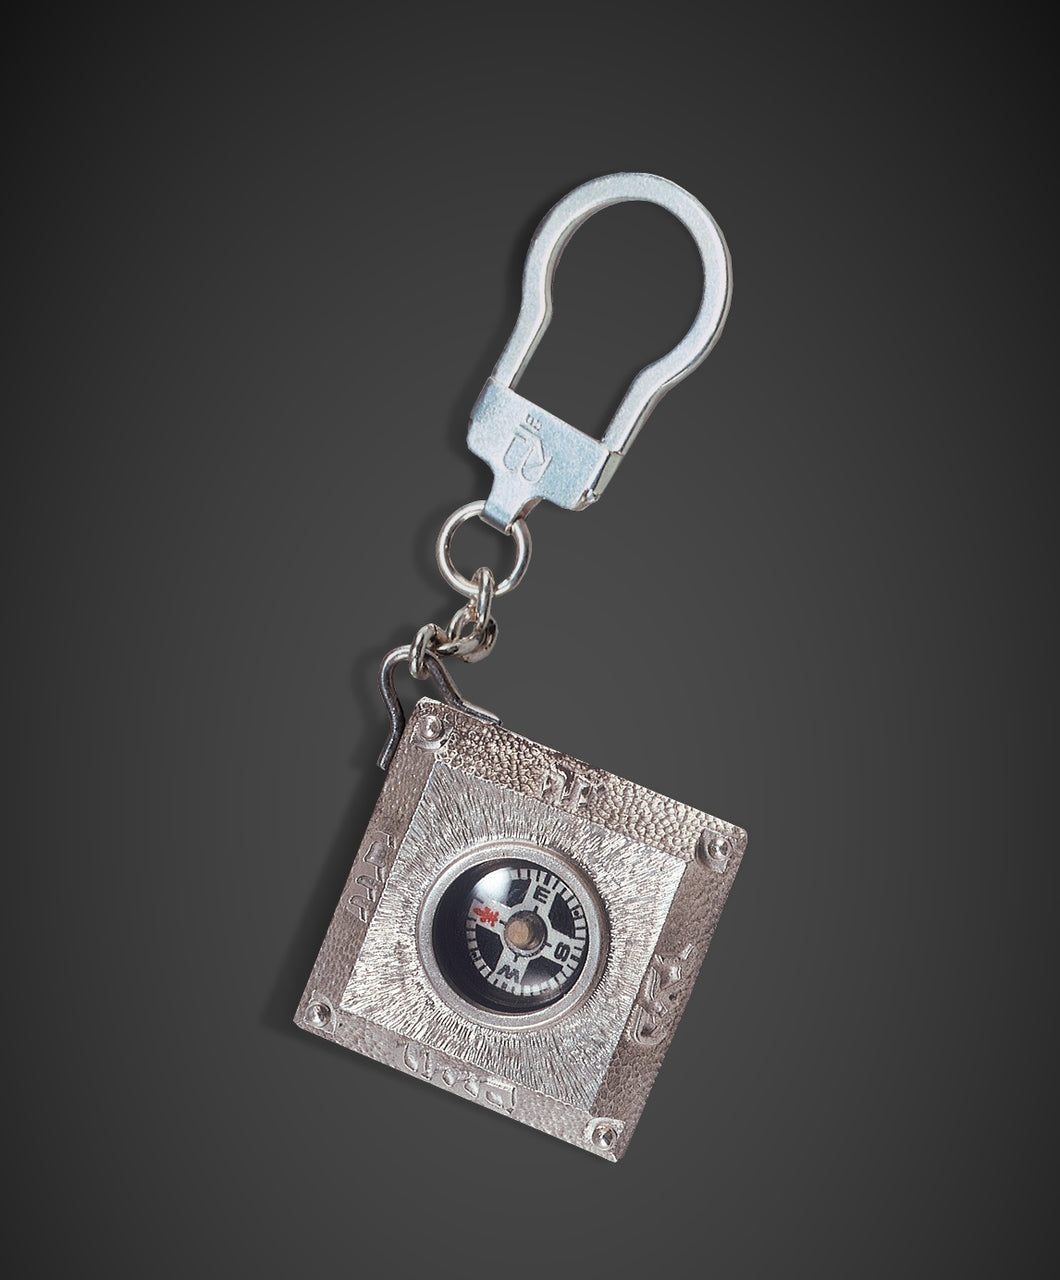 The Mizrach Key Ring